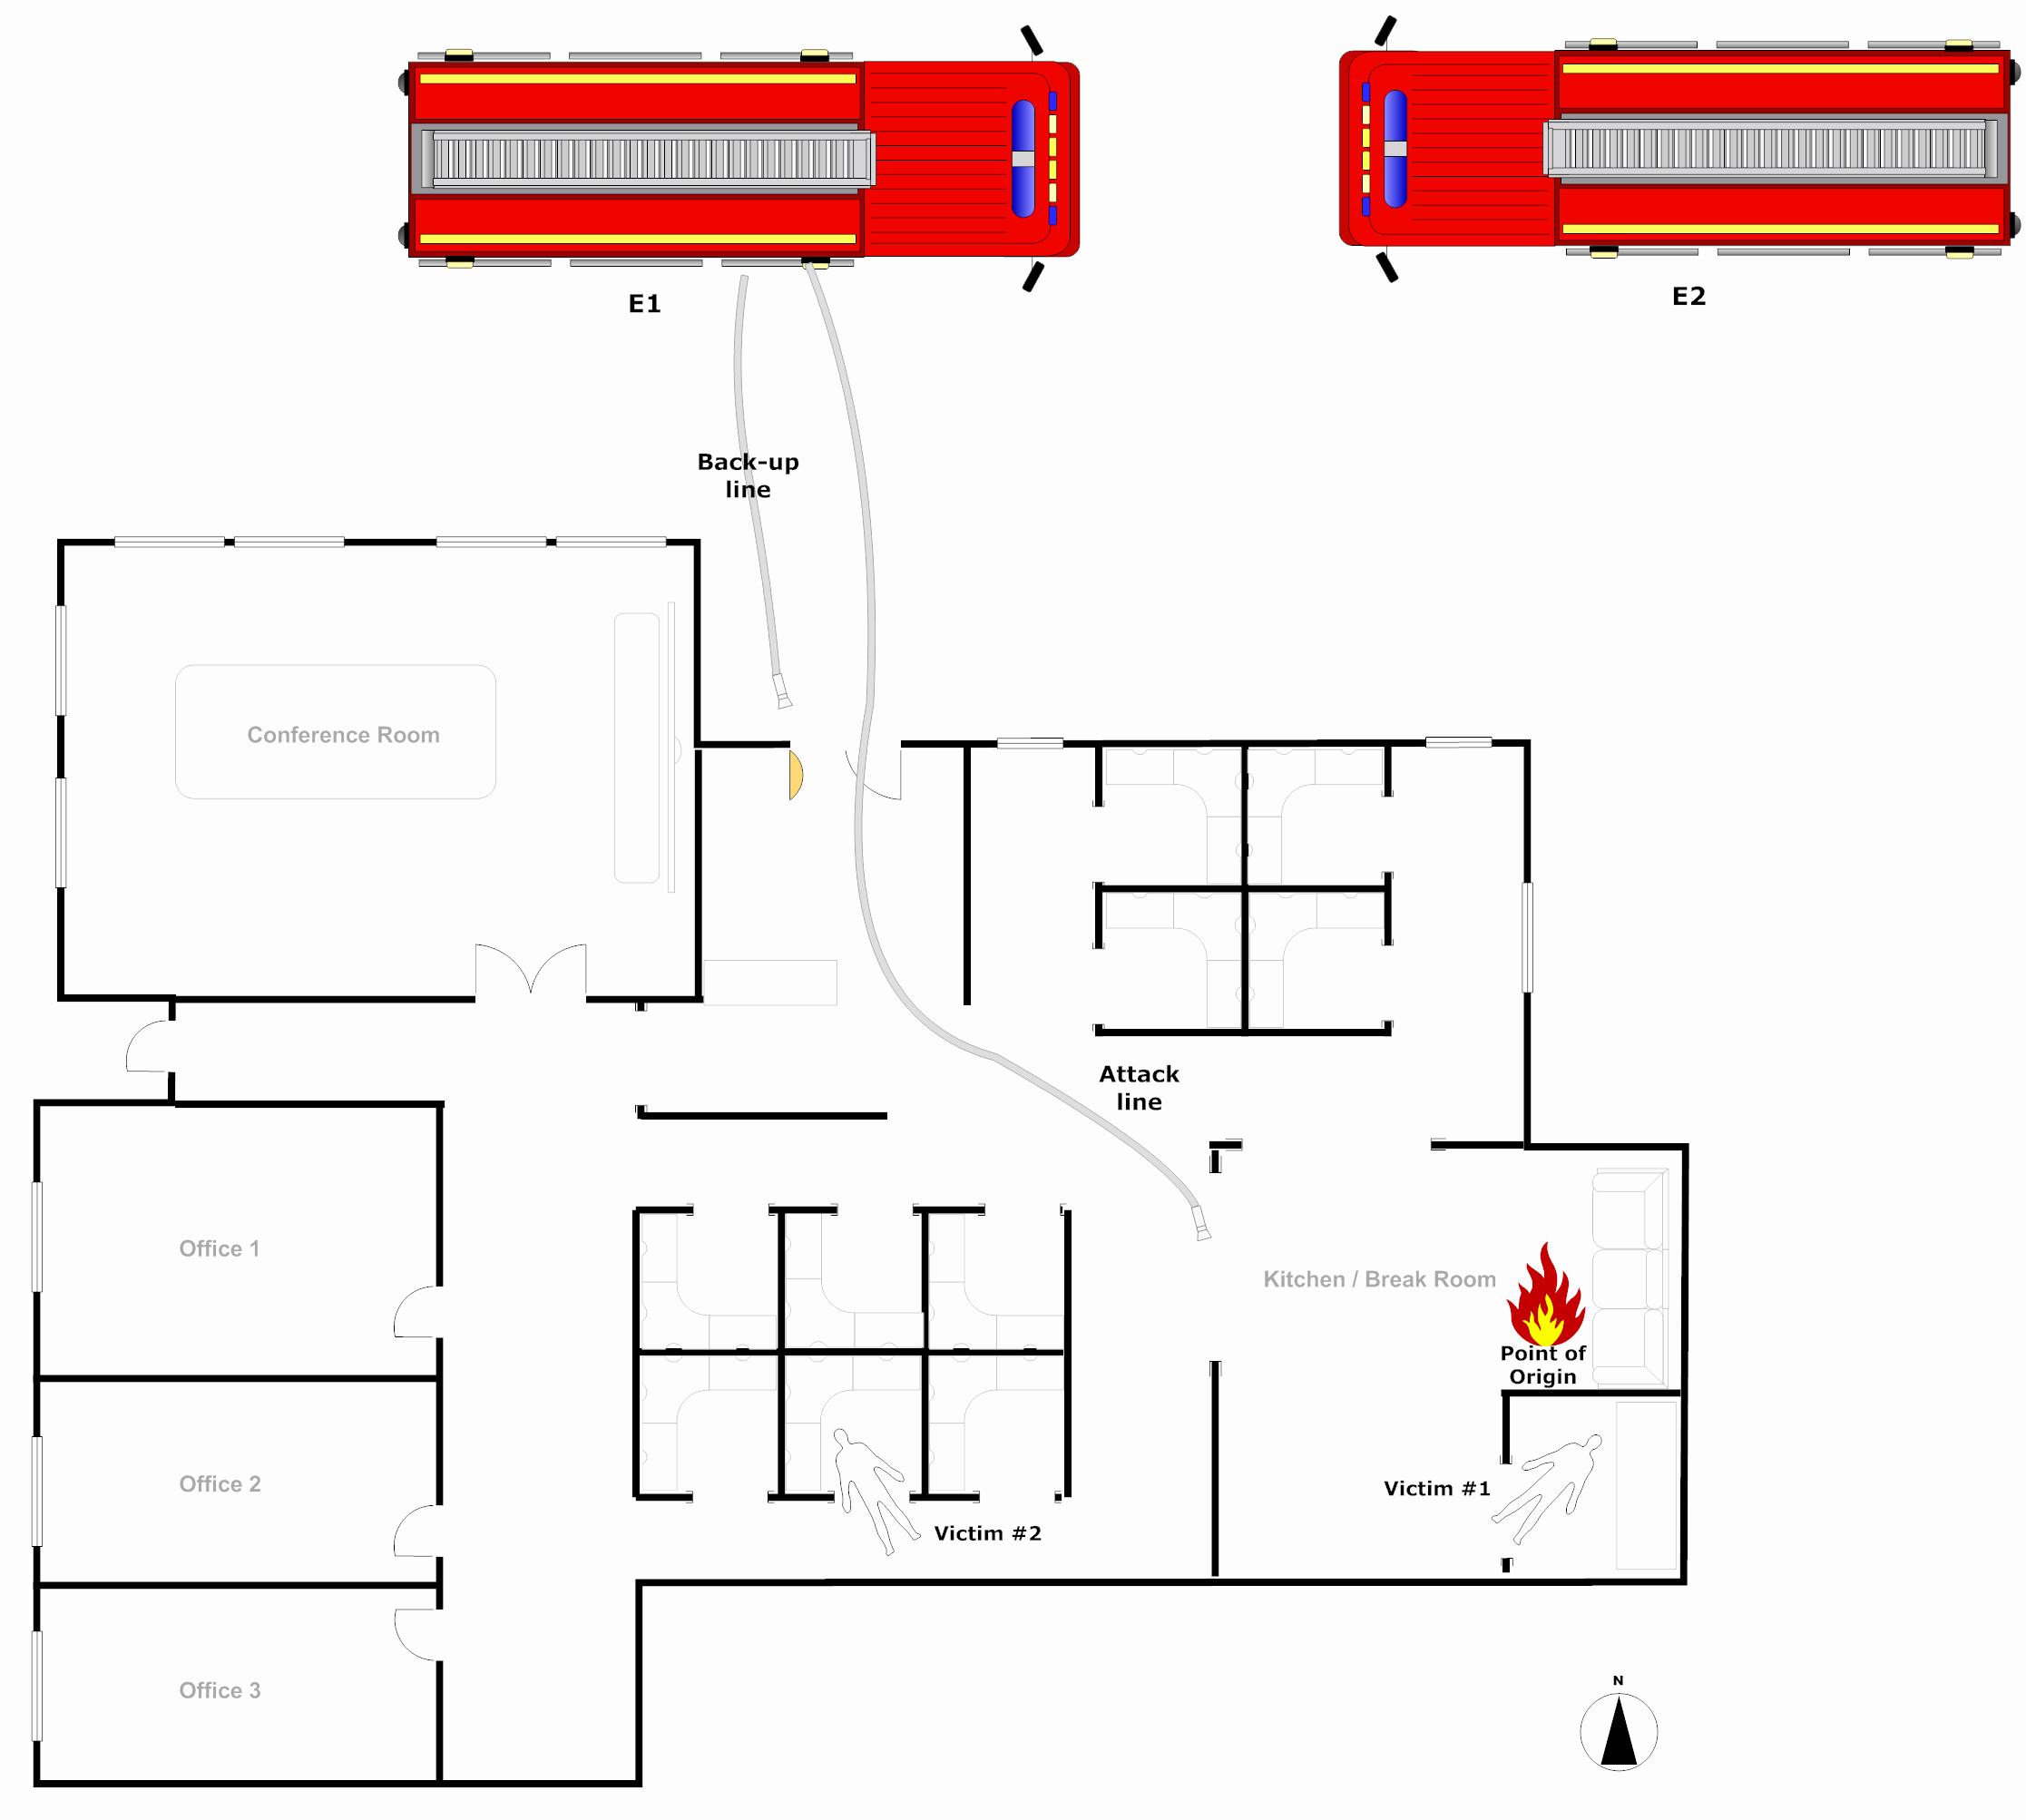 Fire Department Pre Plan Template Luxury Fire Scene software Free Templates for Reports & Access